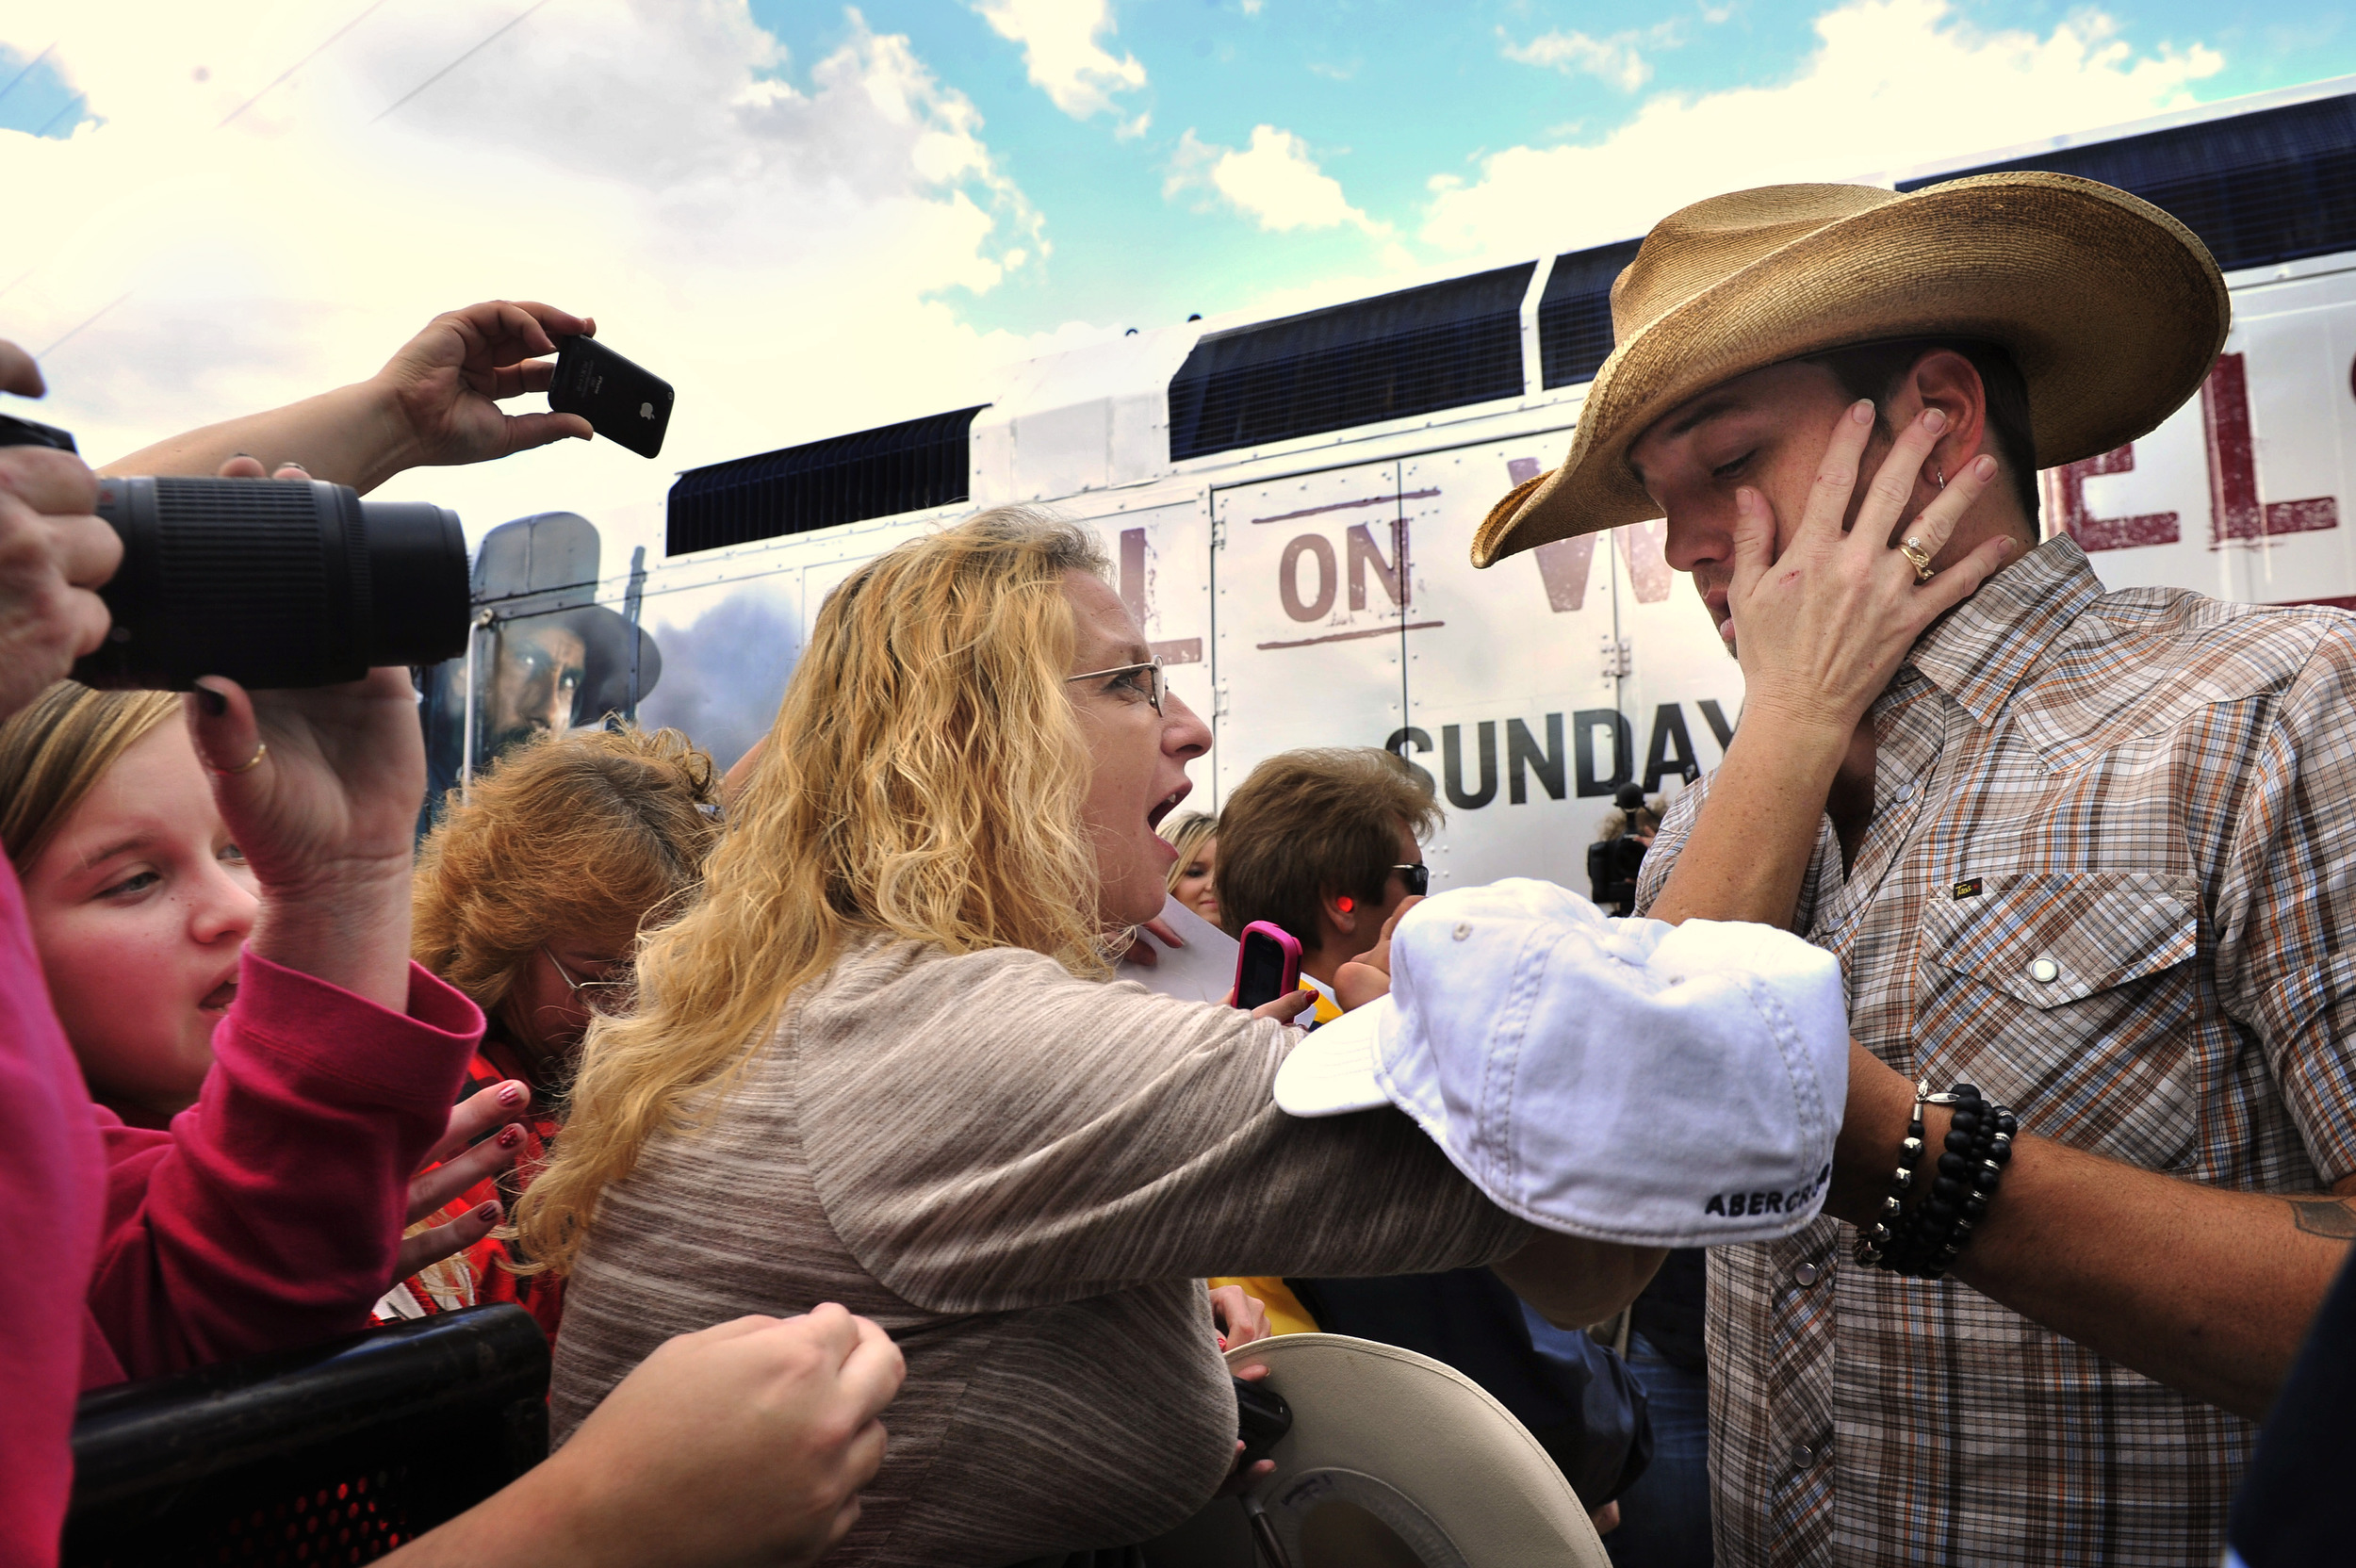 A fan touches Jason Aldean as he signs autographs for fans after a free concert at the riverfront downtown in Nashville, Tenn.